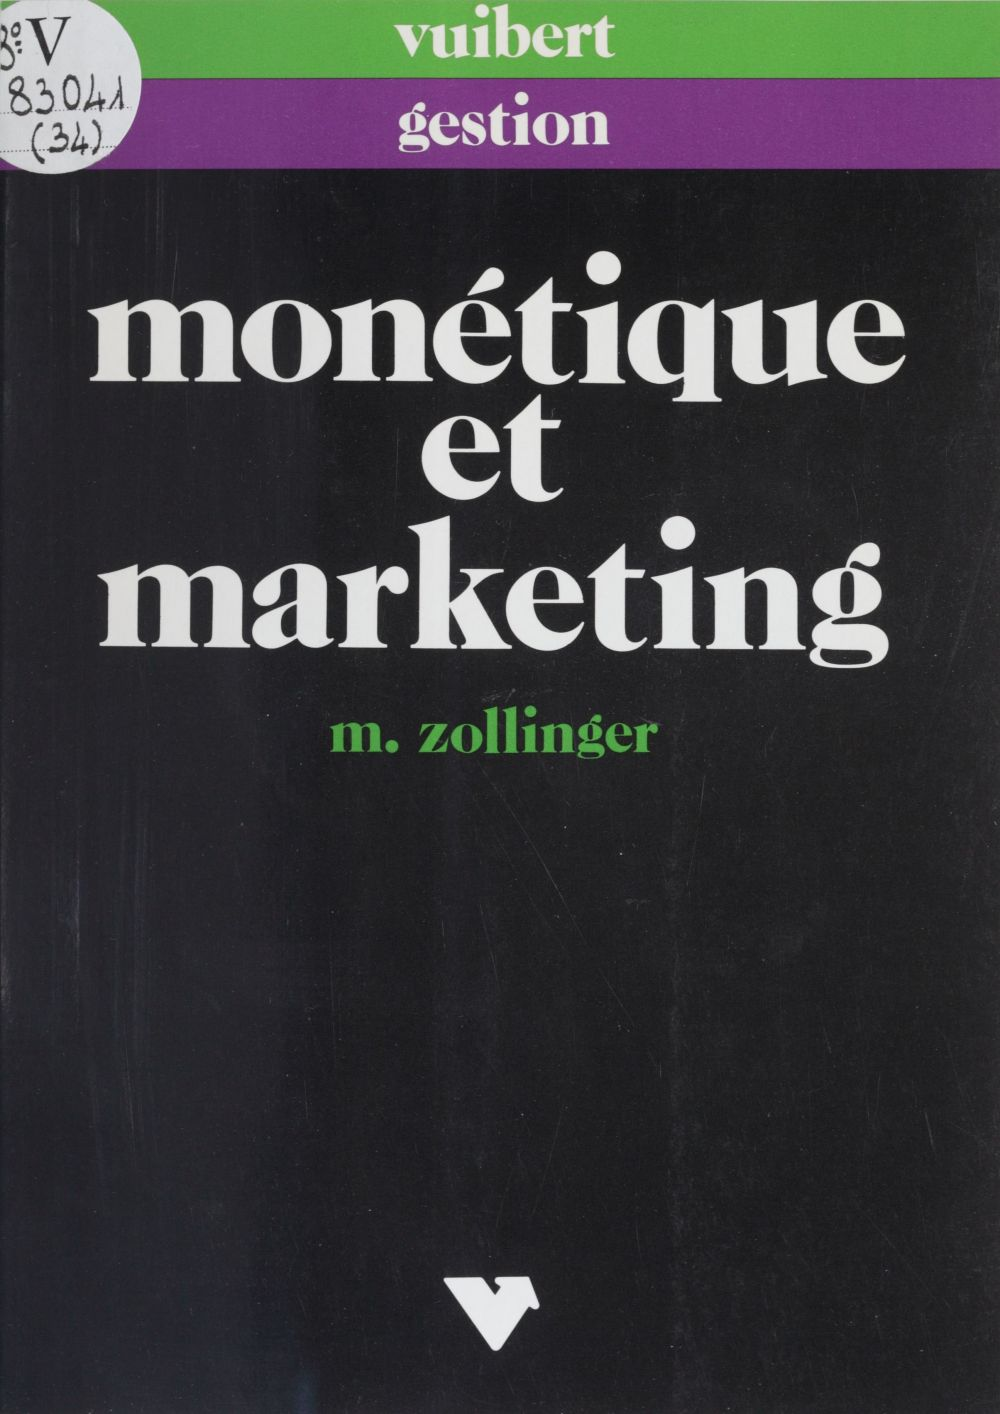 Monétique et marketing